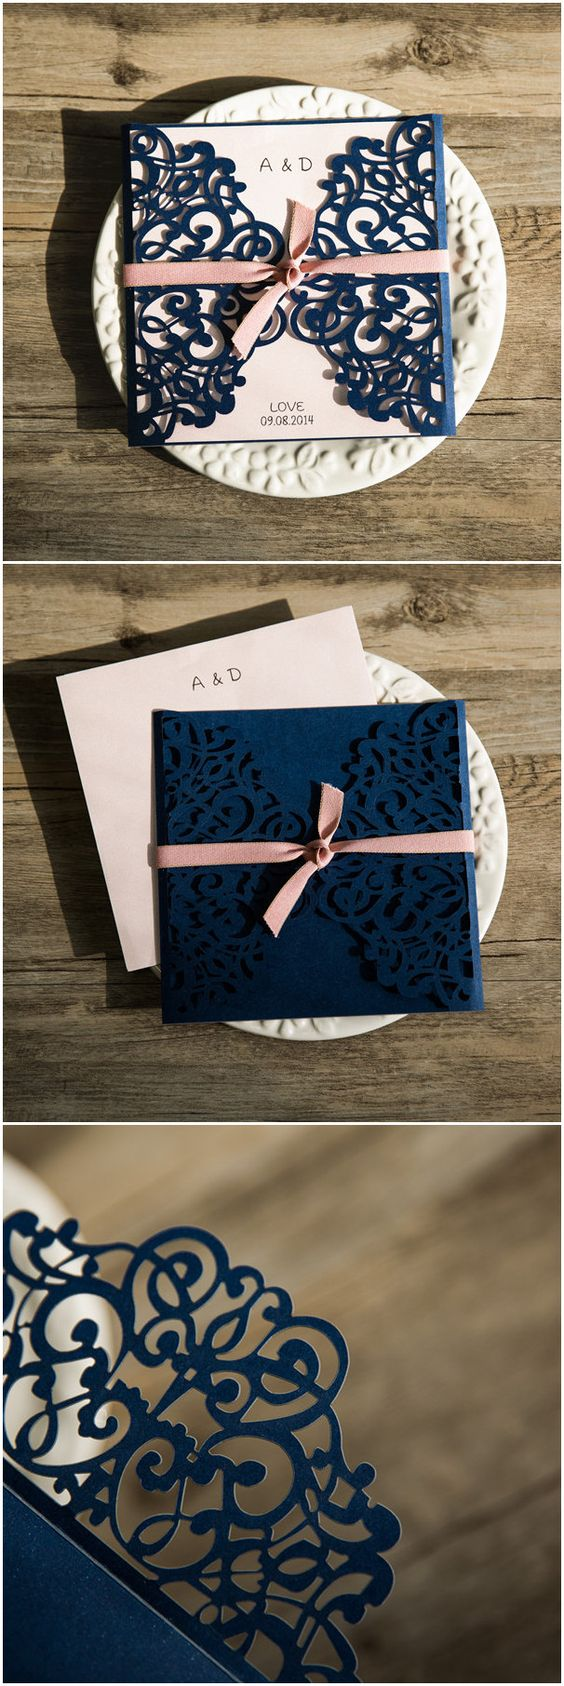 https://www.elegantweddinginvites.com/gorgeous-mint-invitation-inspired-wedding-color-combo-ideas-s/